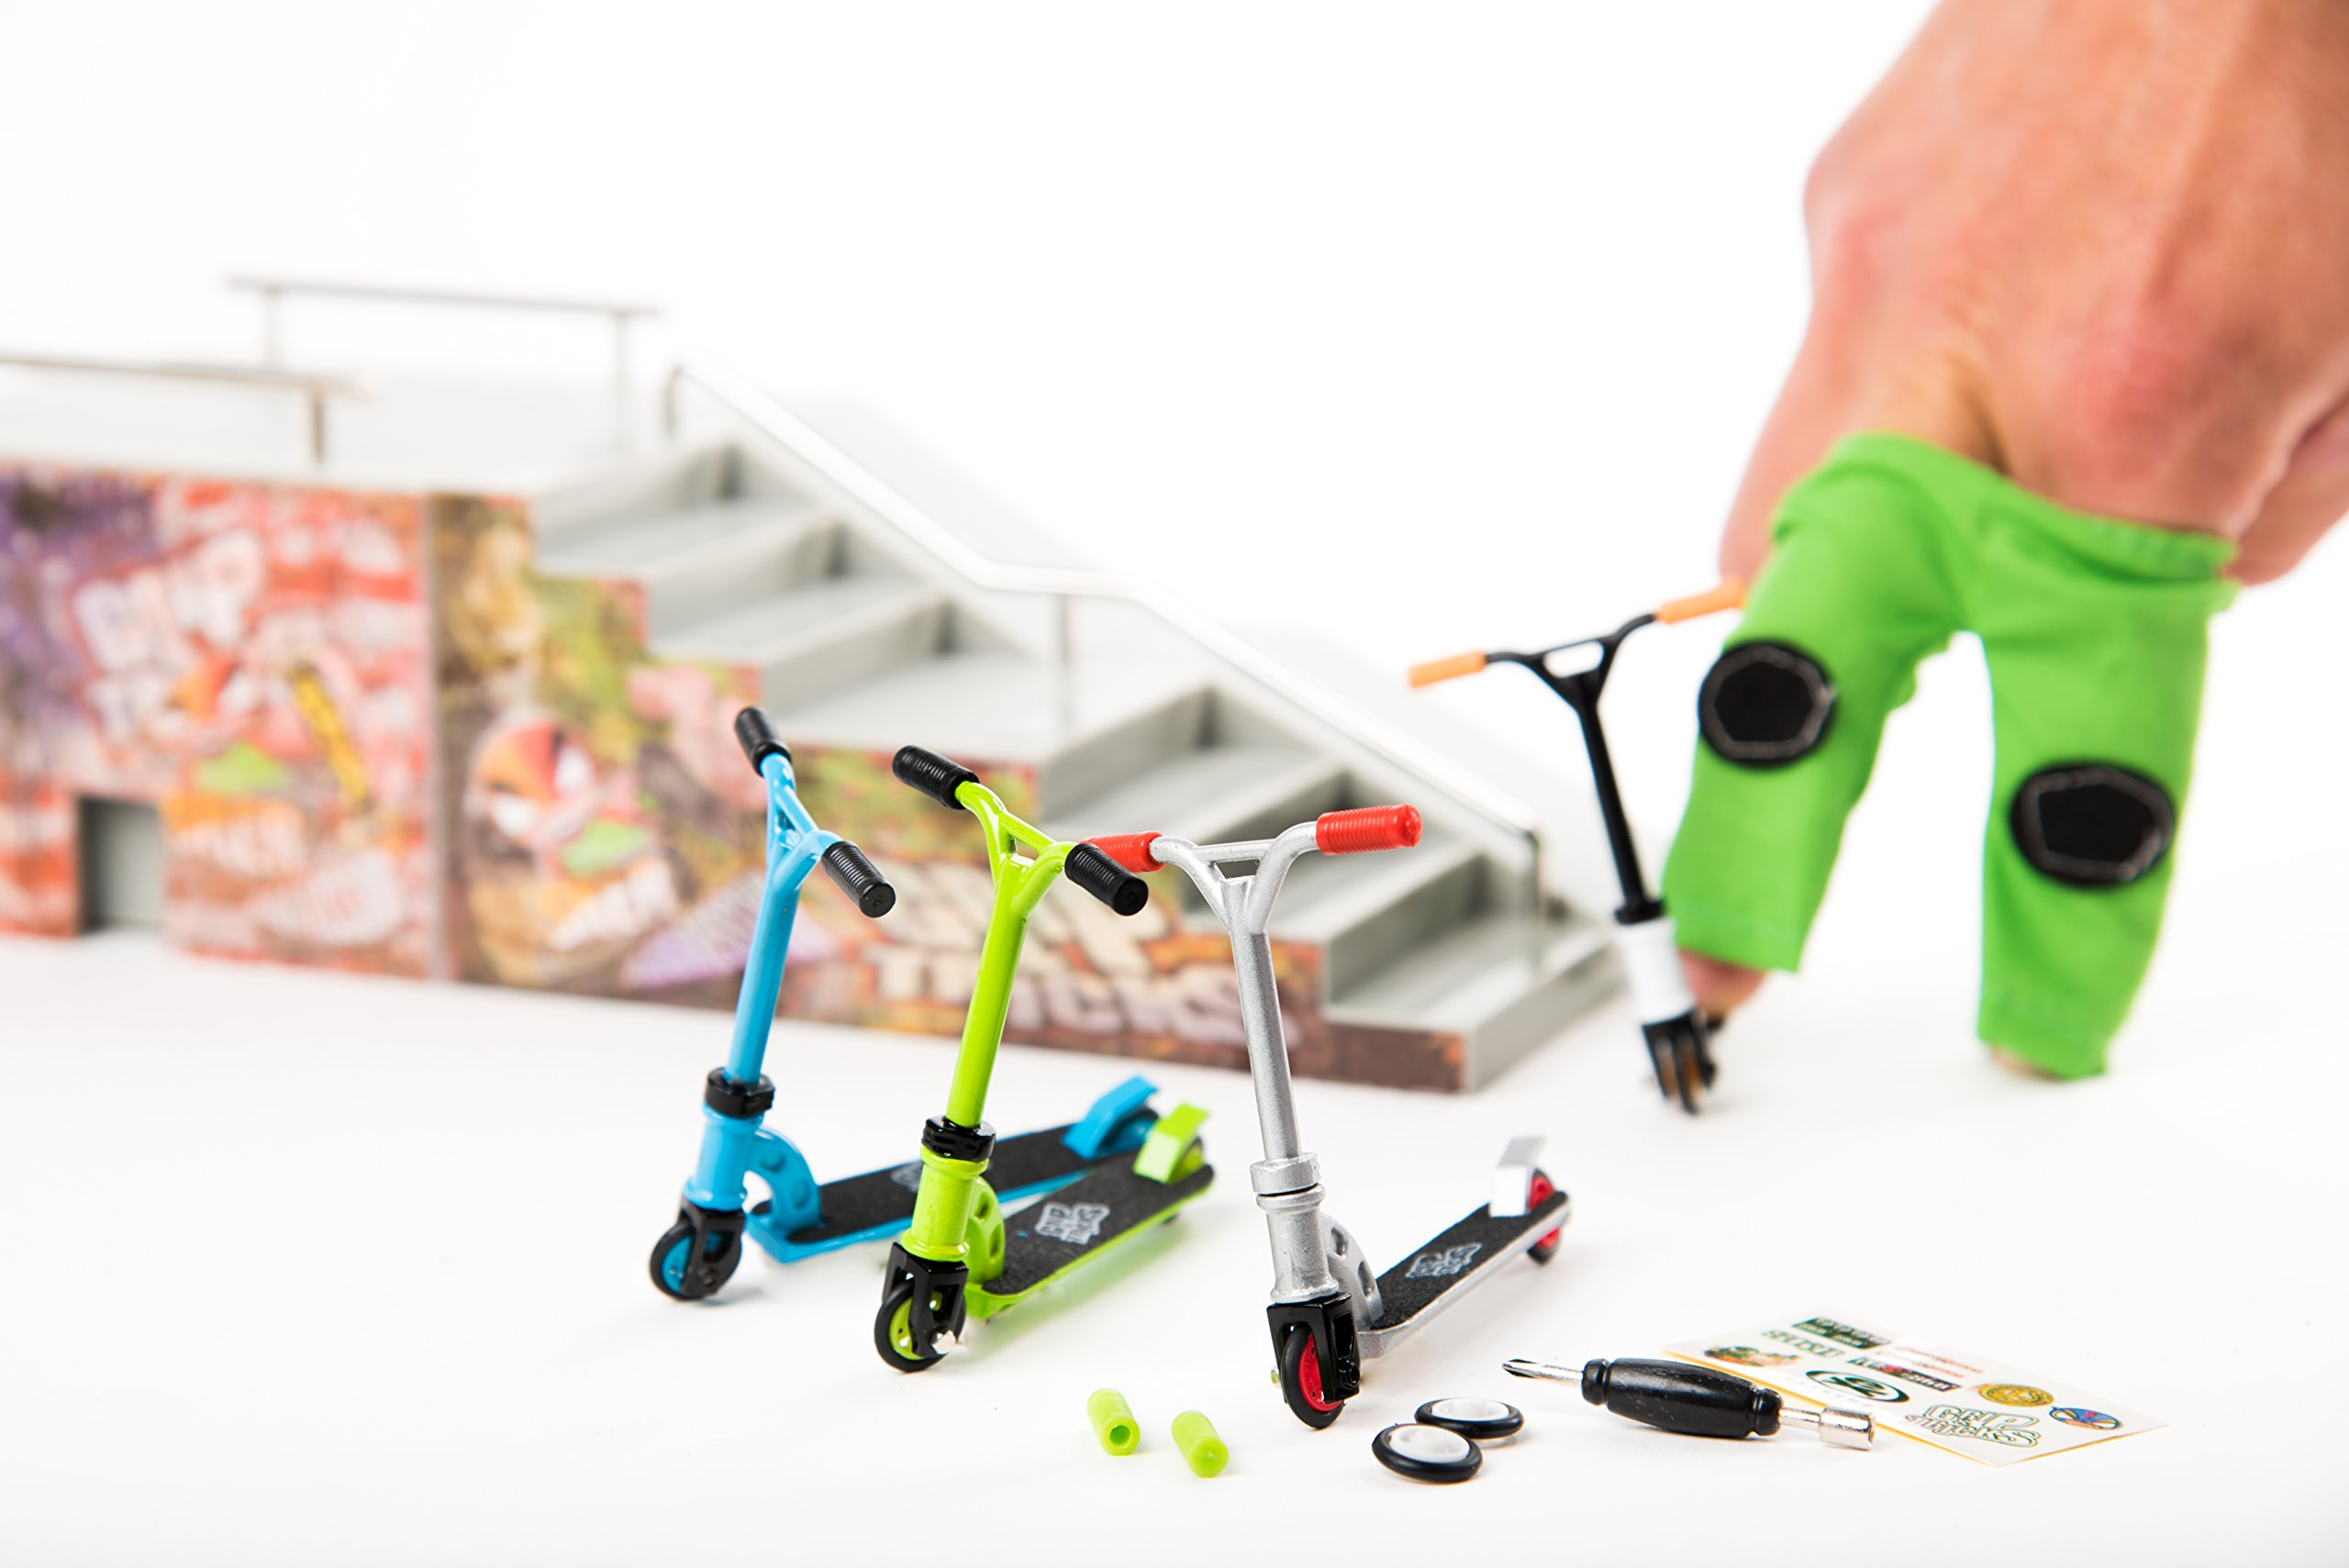 LOT of 4 Scooters - Grip and Tricks - Great Deal 4 Pack of Finger Scooters - Skate - Pack1 by Grip&Tricks (Image #7)